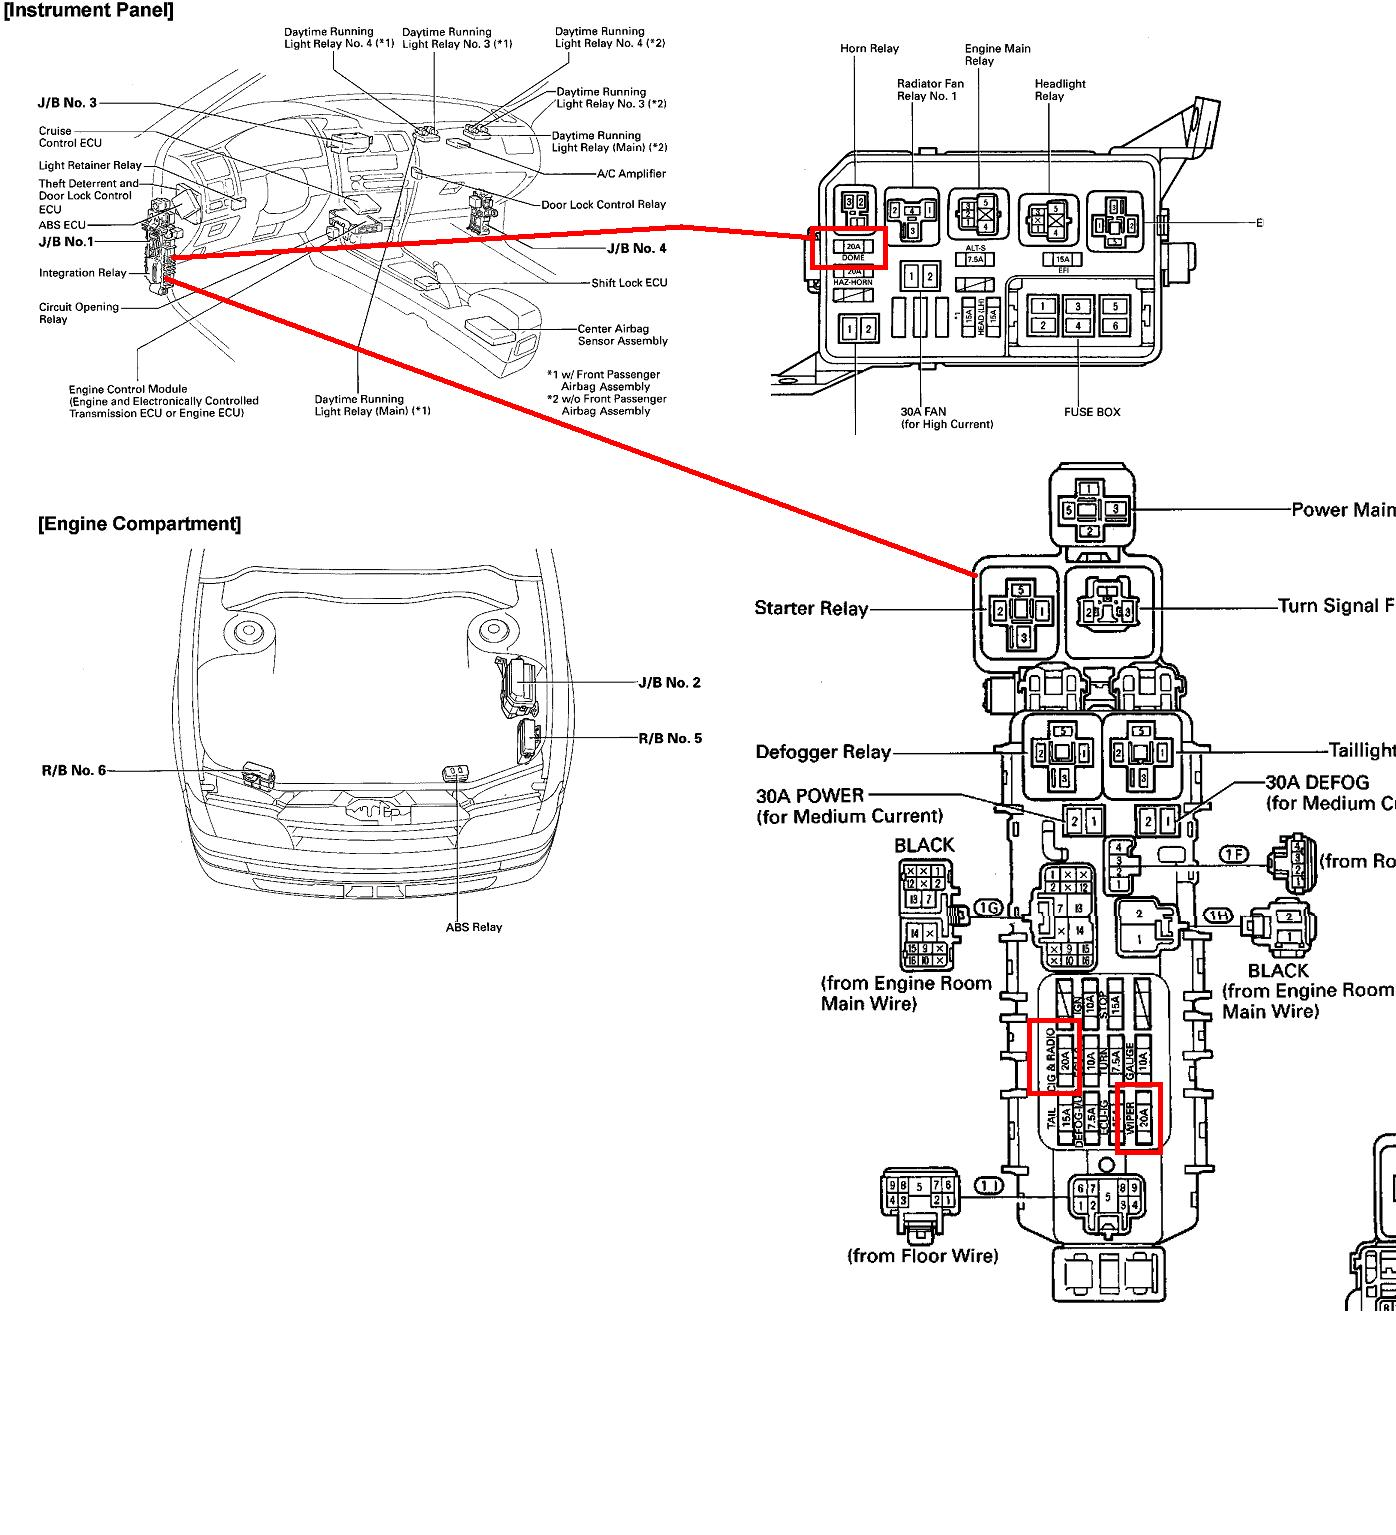 2003 Toyota Corolla S Fuse Box Location - Wiring Diagrams Lose